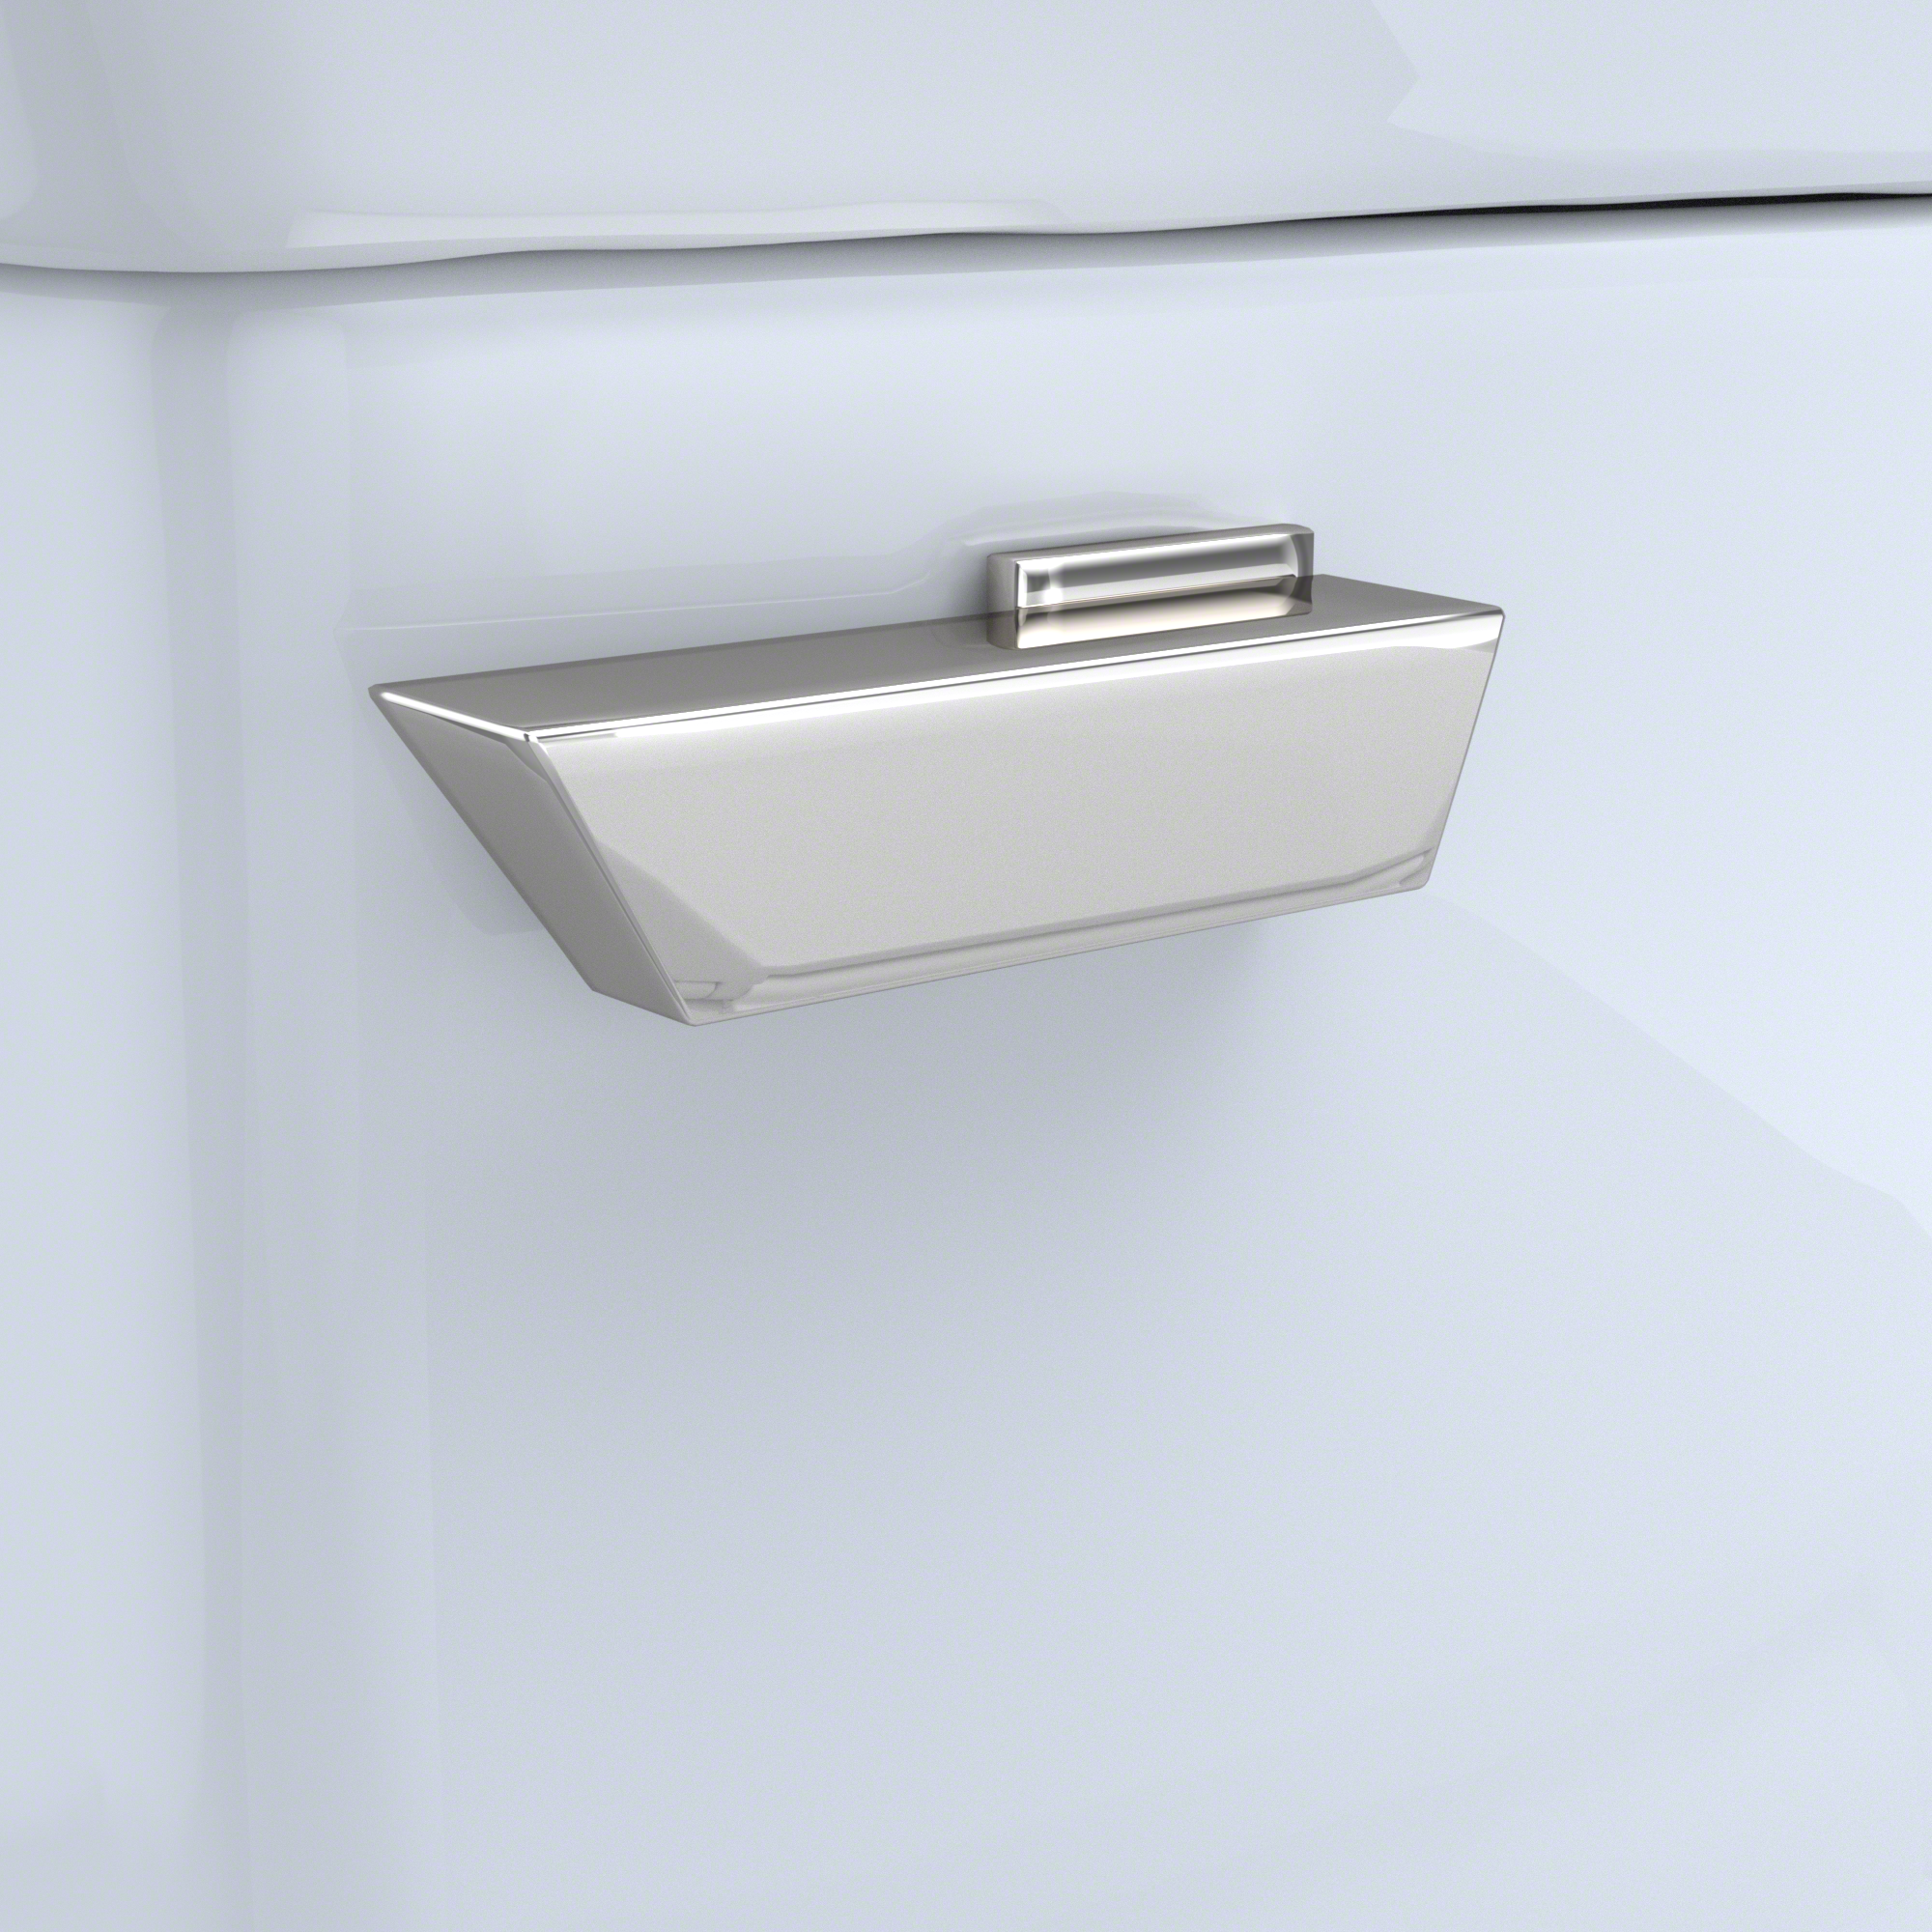 Photo of Trip Lever- Polished Nickel for Soiree Toilet Tank